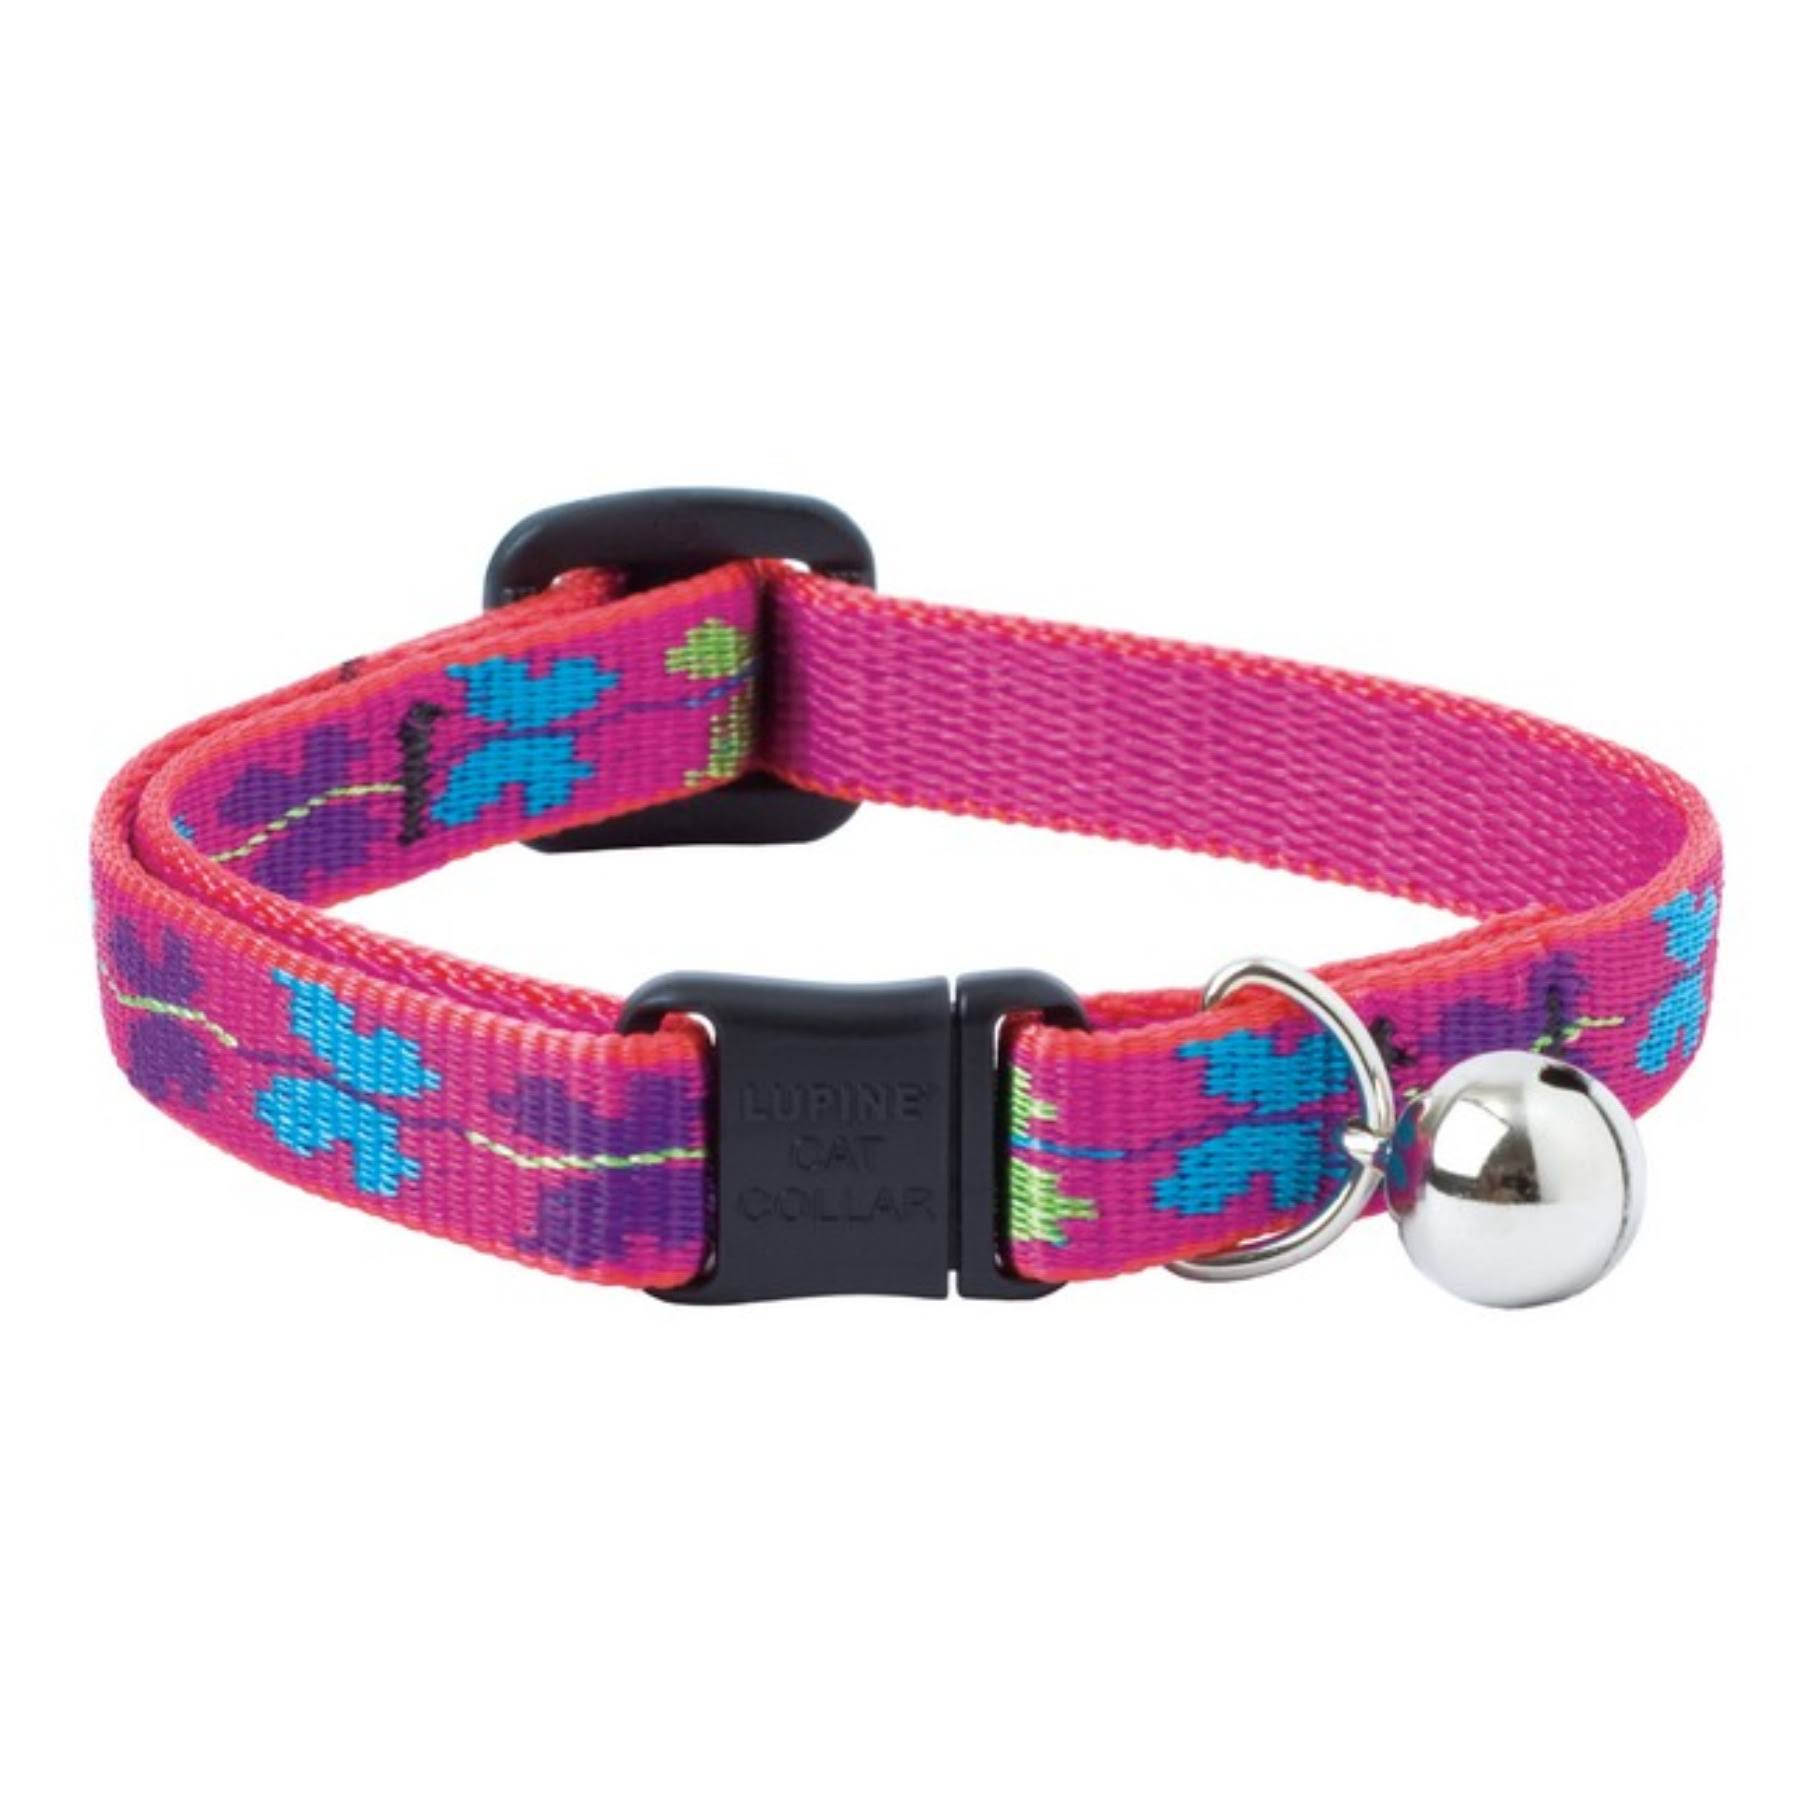 "Lupine Classic Designer Collection Adjustable Cat Safety Collar - 8-12"", Wing It, With Bell"